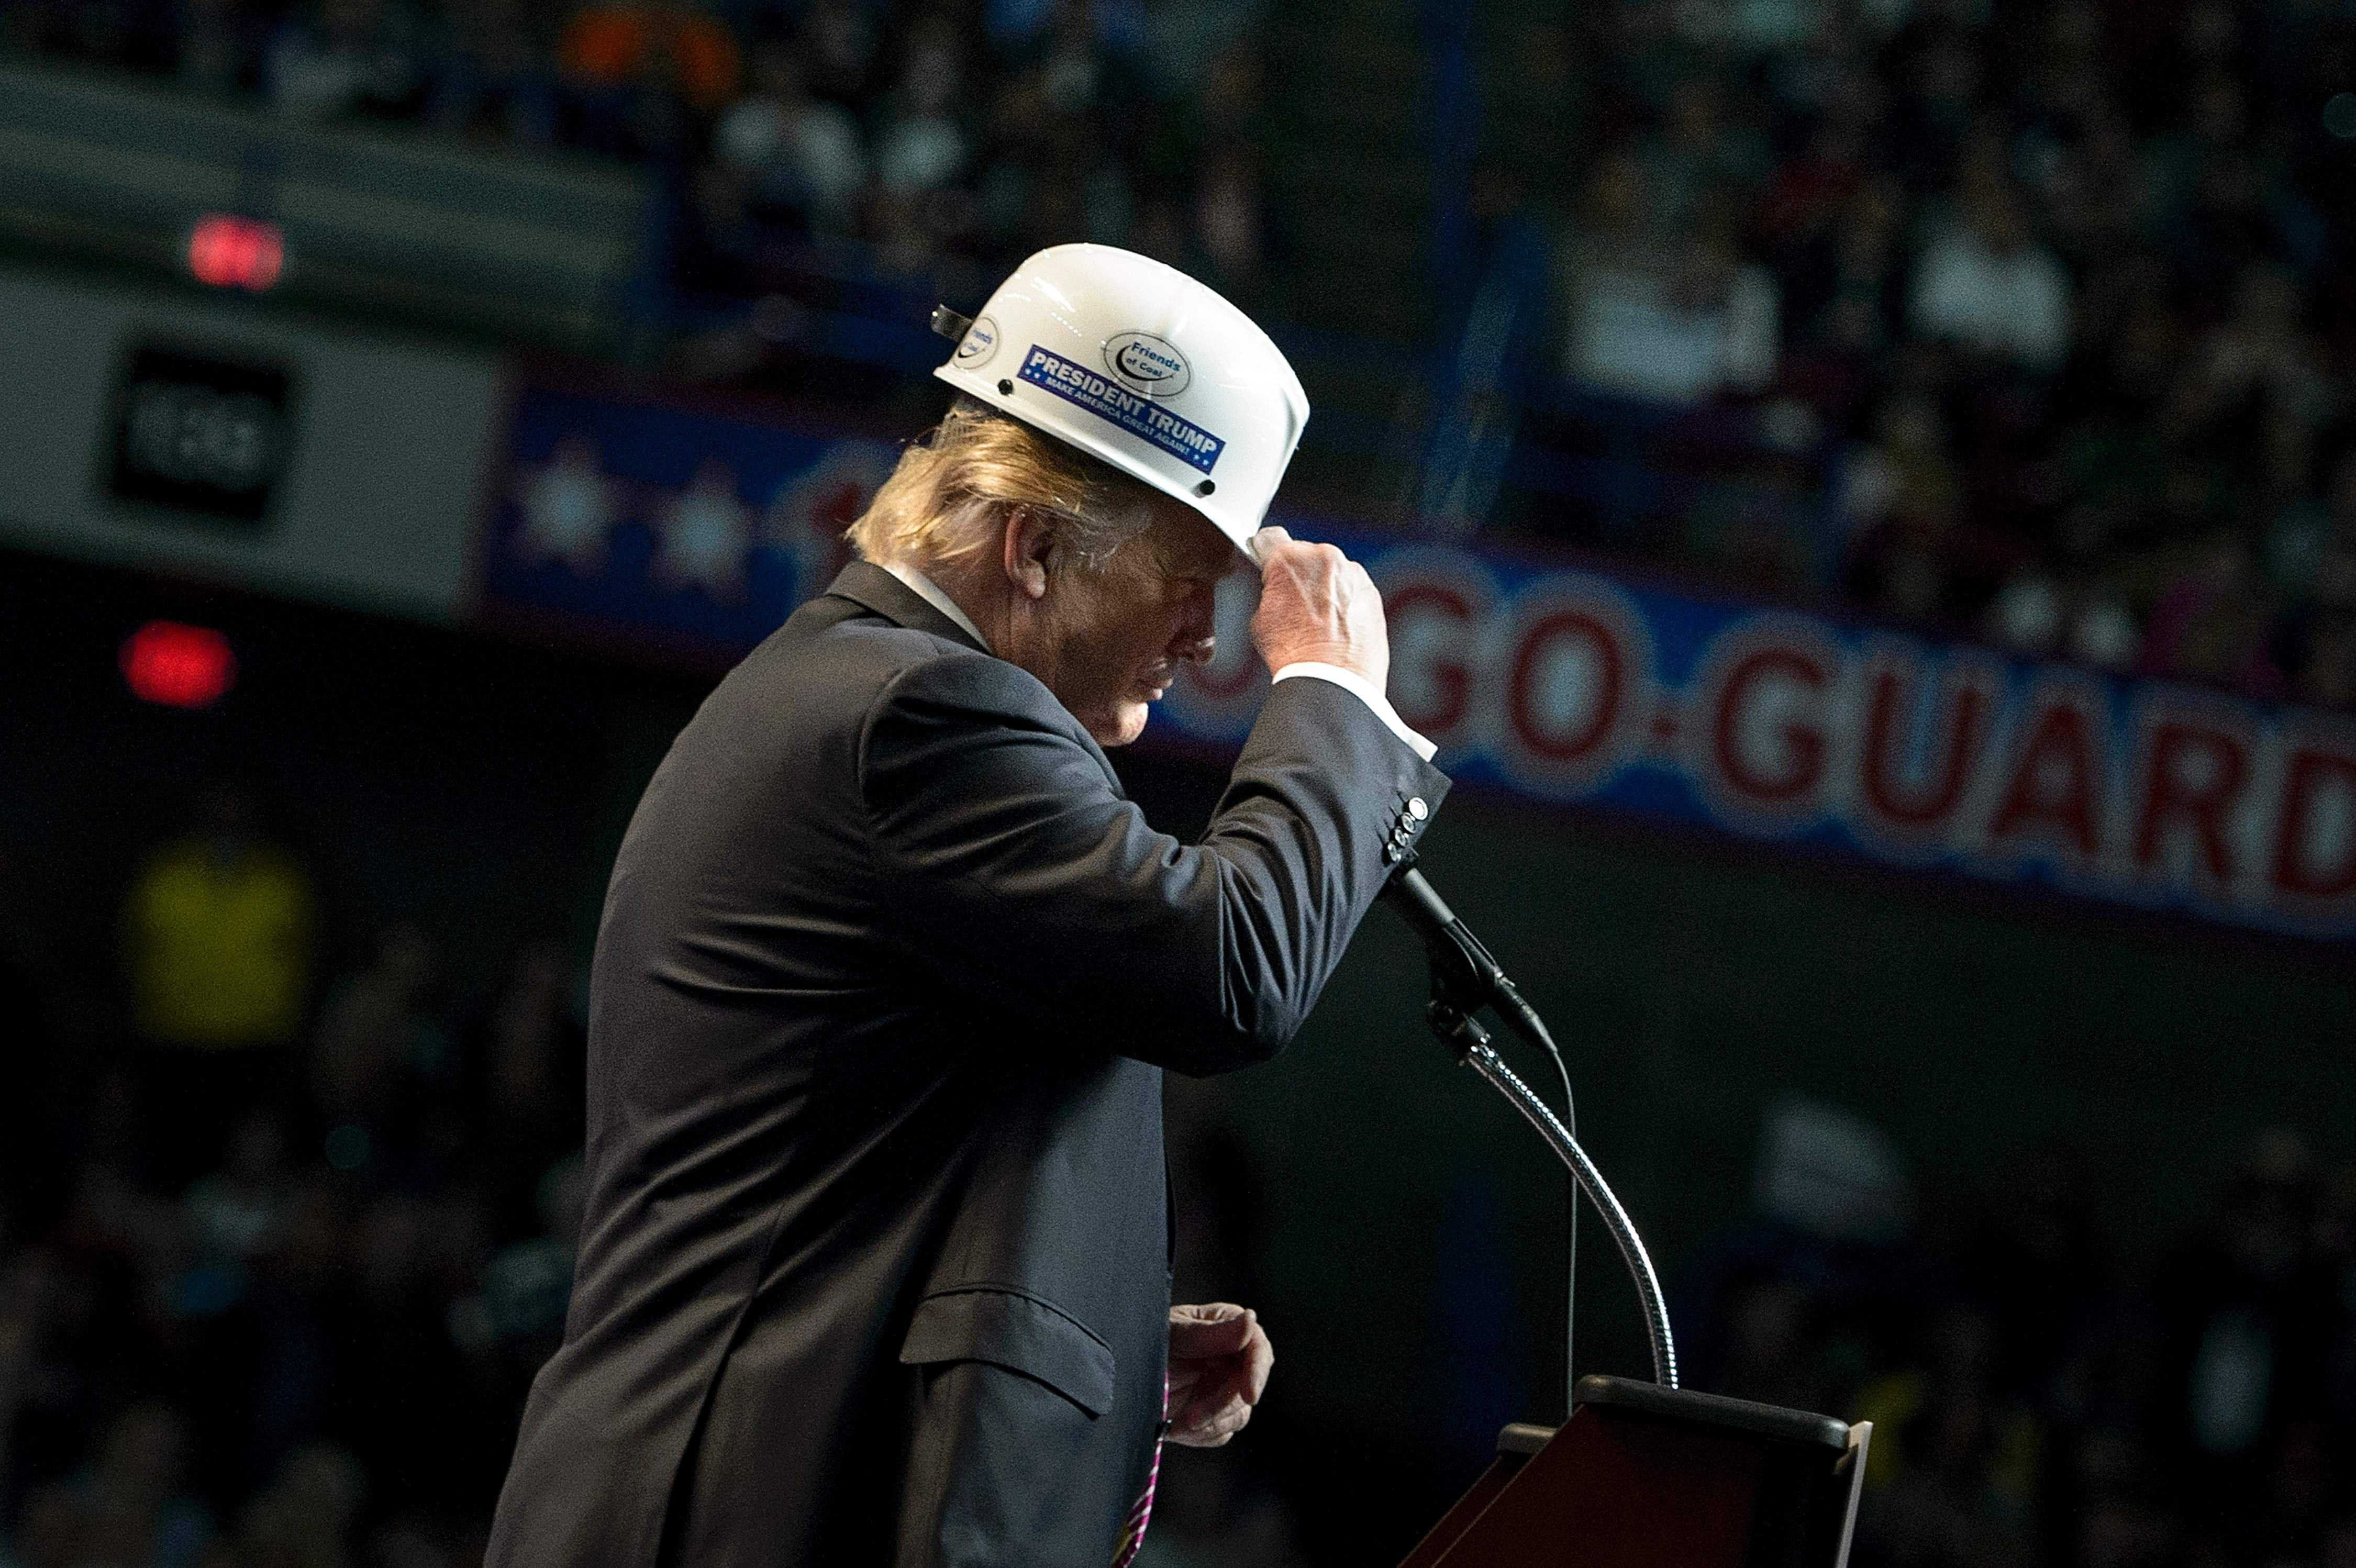 Donald Trump puts on a miner's hat while speaking during a rally on May 5, 2016 in Charleston, West Virginia.